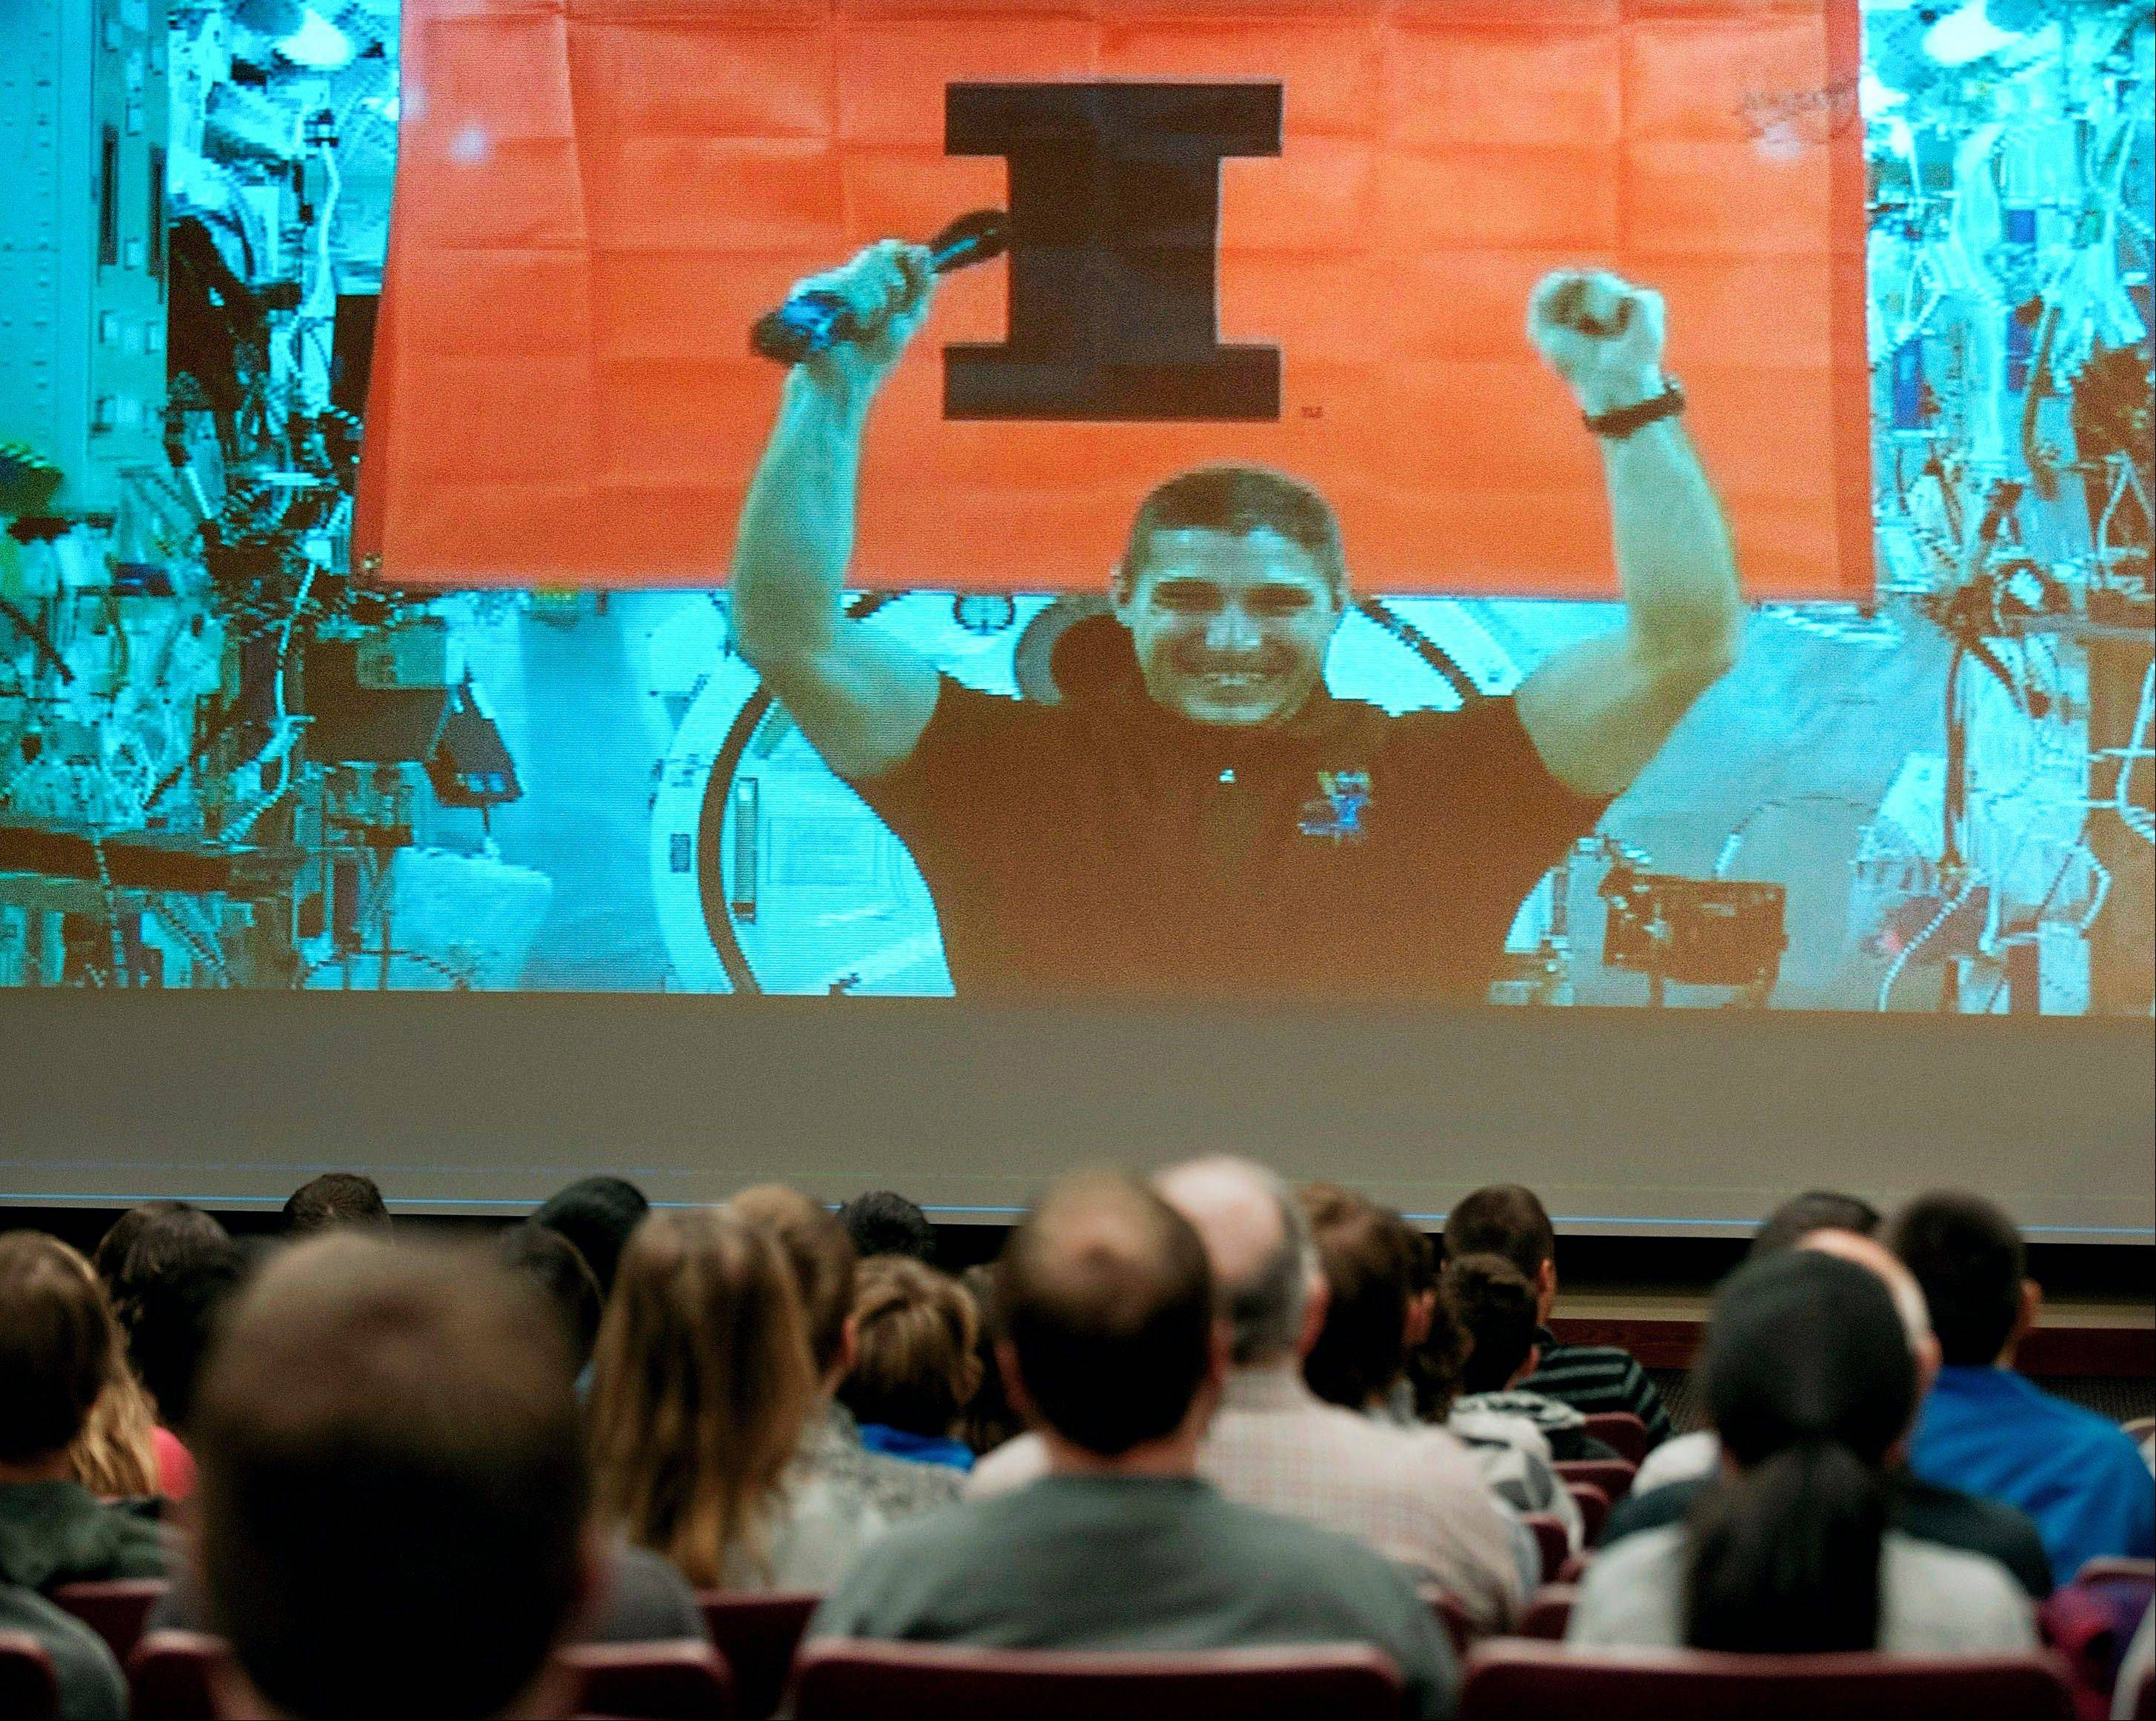 Mike Hopkins, a 1991 engineering graduate of the University of Illinois, greets an audience at his alma mater in Urbana through a live video chat from the International Space Station. Hopkins had 10 minutes to answer questions from Illini aerospace engineering students at the University of Illinois National Center for Supercomputing Applications.